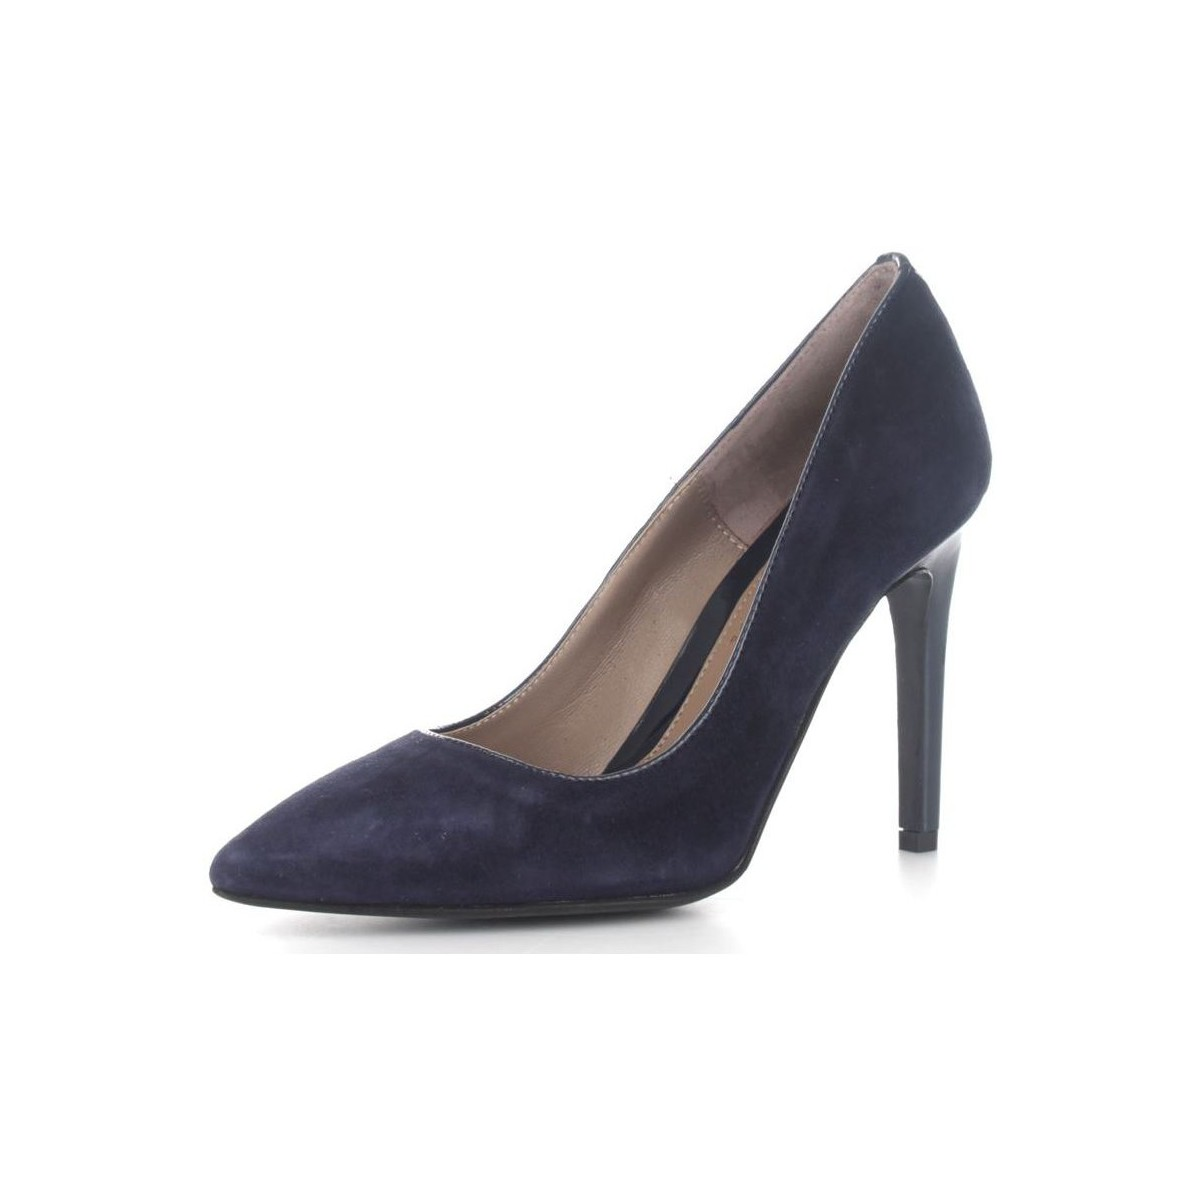 Café Noir HT505 Pumps Frau Blue Blue - Schuhe Pumps Damen 96,93 €